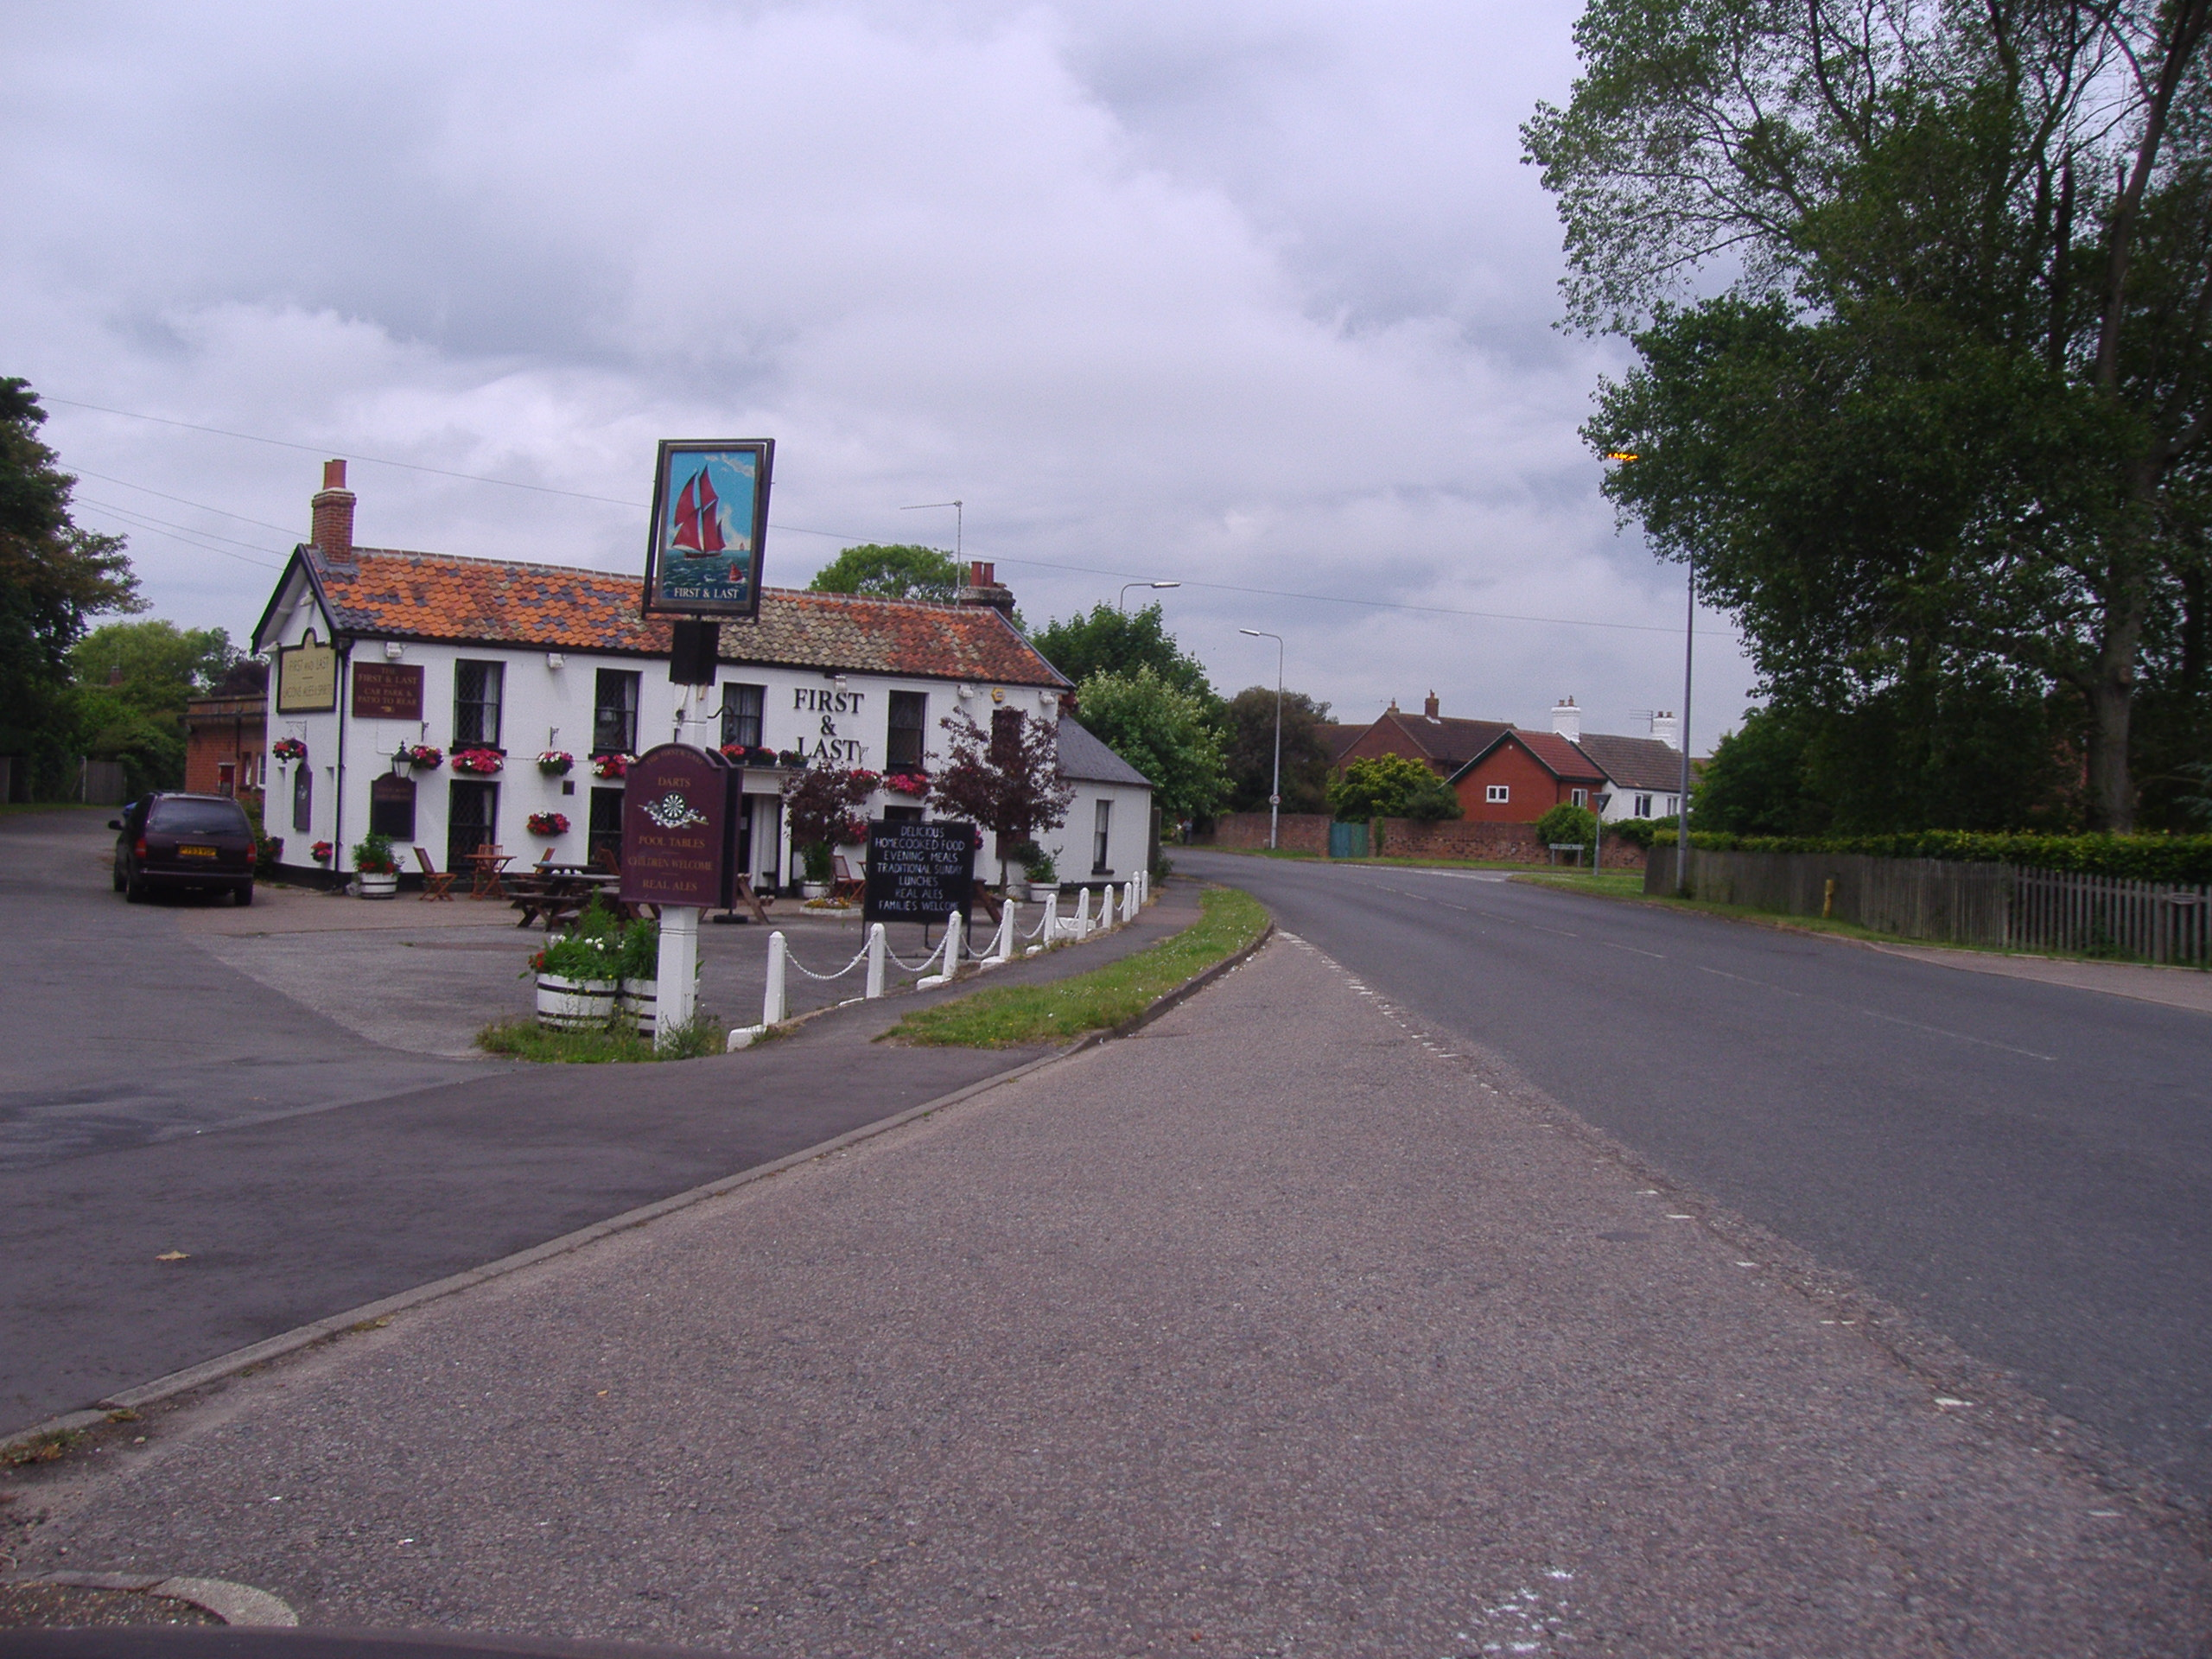 FileFirst and Last public House Ormesby NorfolkJPG Wikimedia